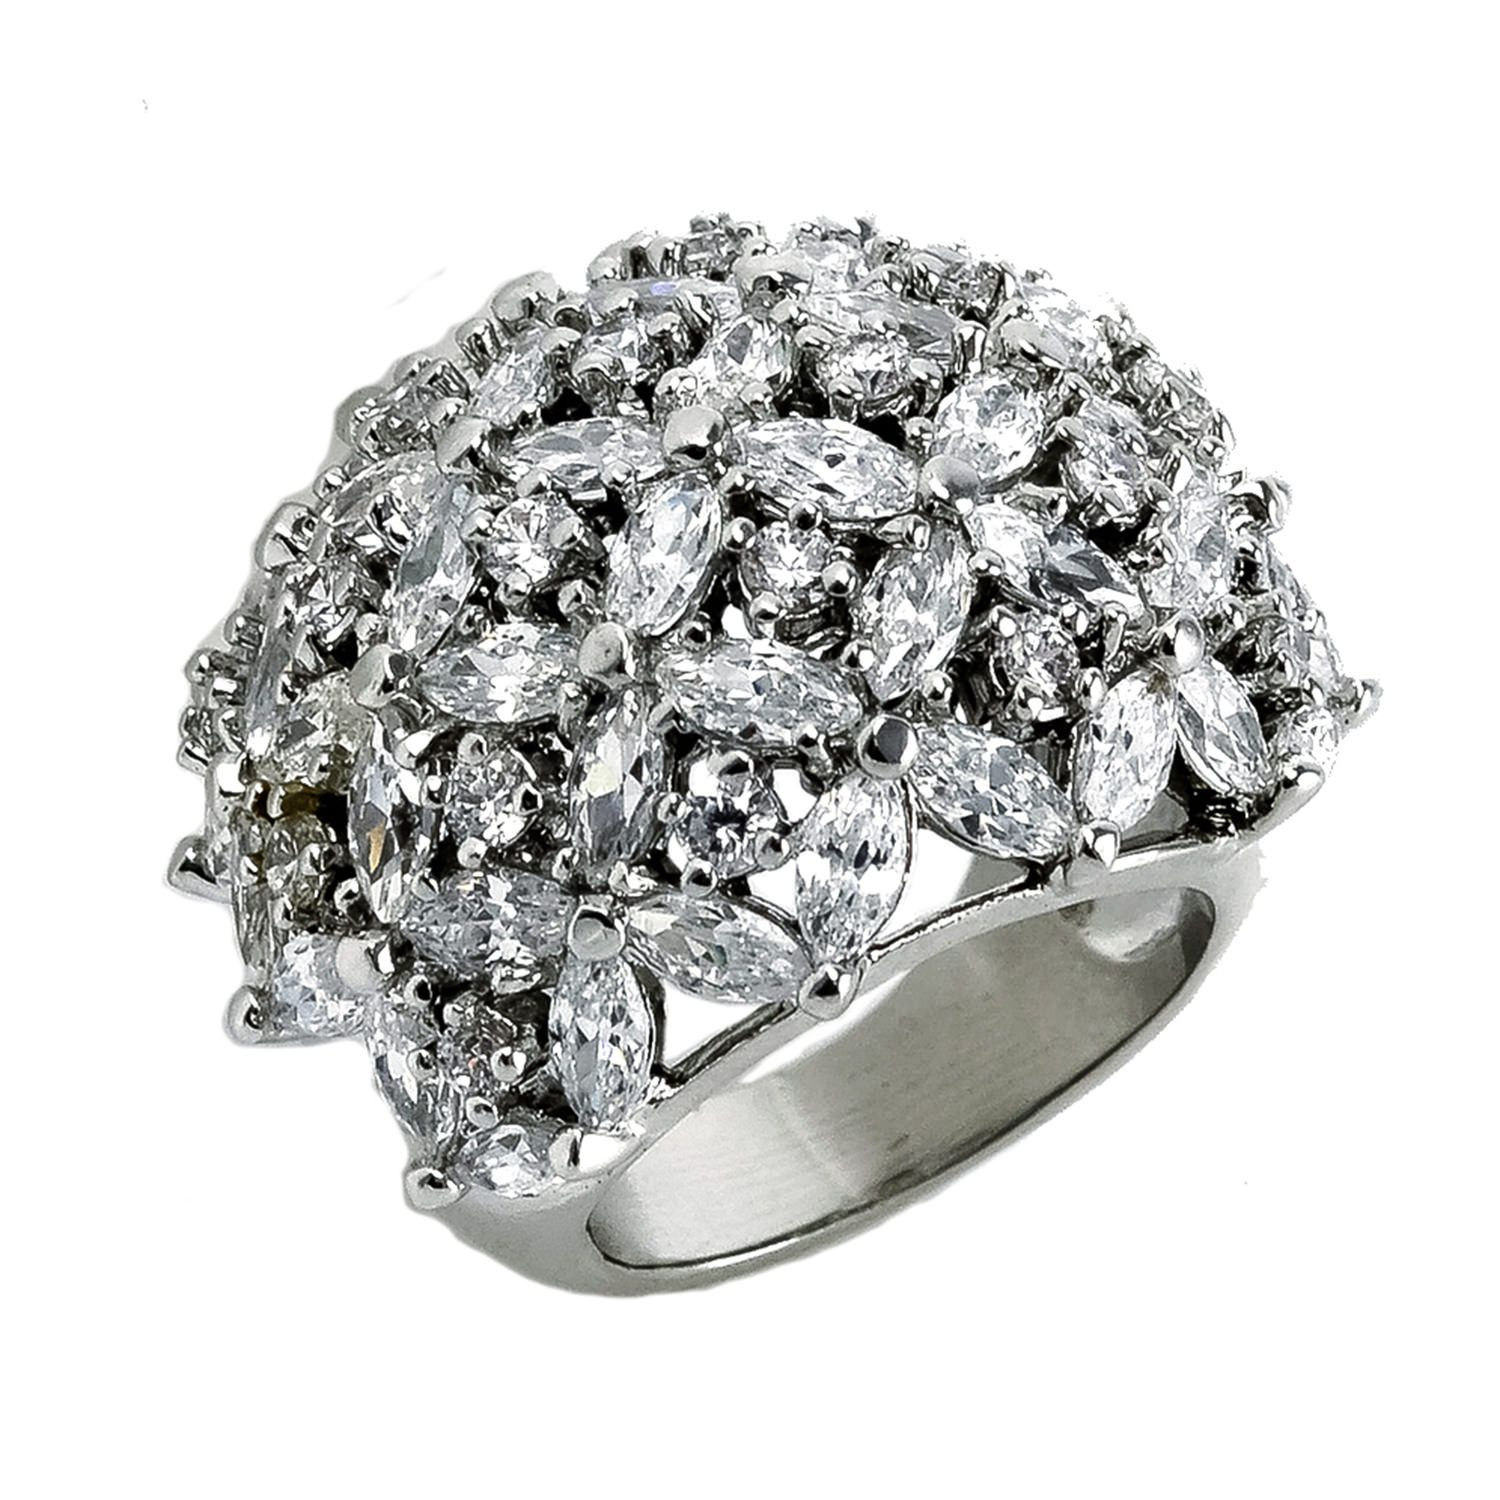 Clear CZ flower fashion ring. Sizes 5-9. Item #: jmr571-cl